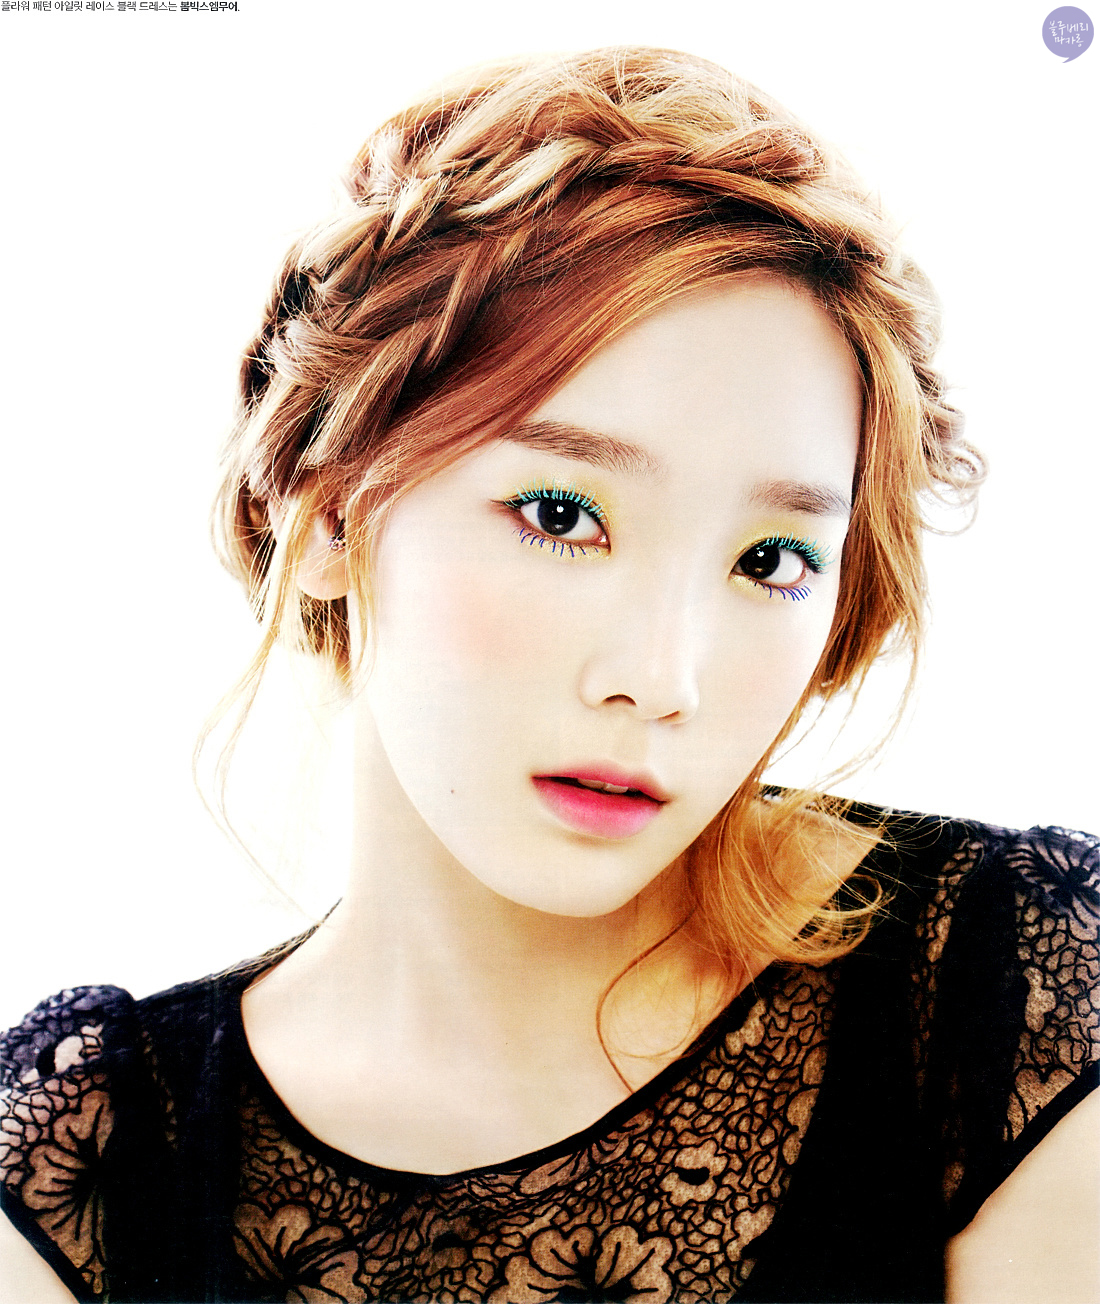 SNSD's Taeyeon for 'High Cut' Magazine!